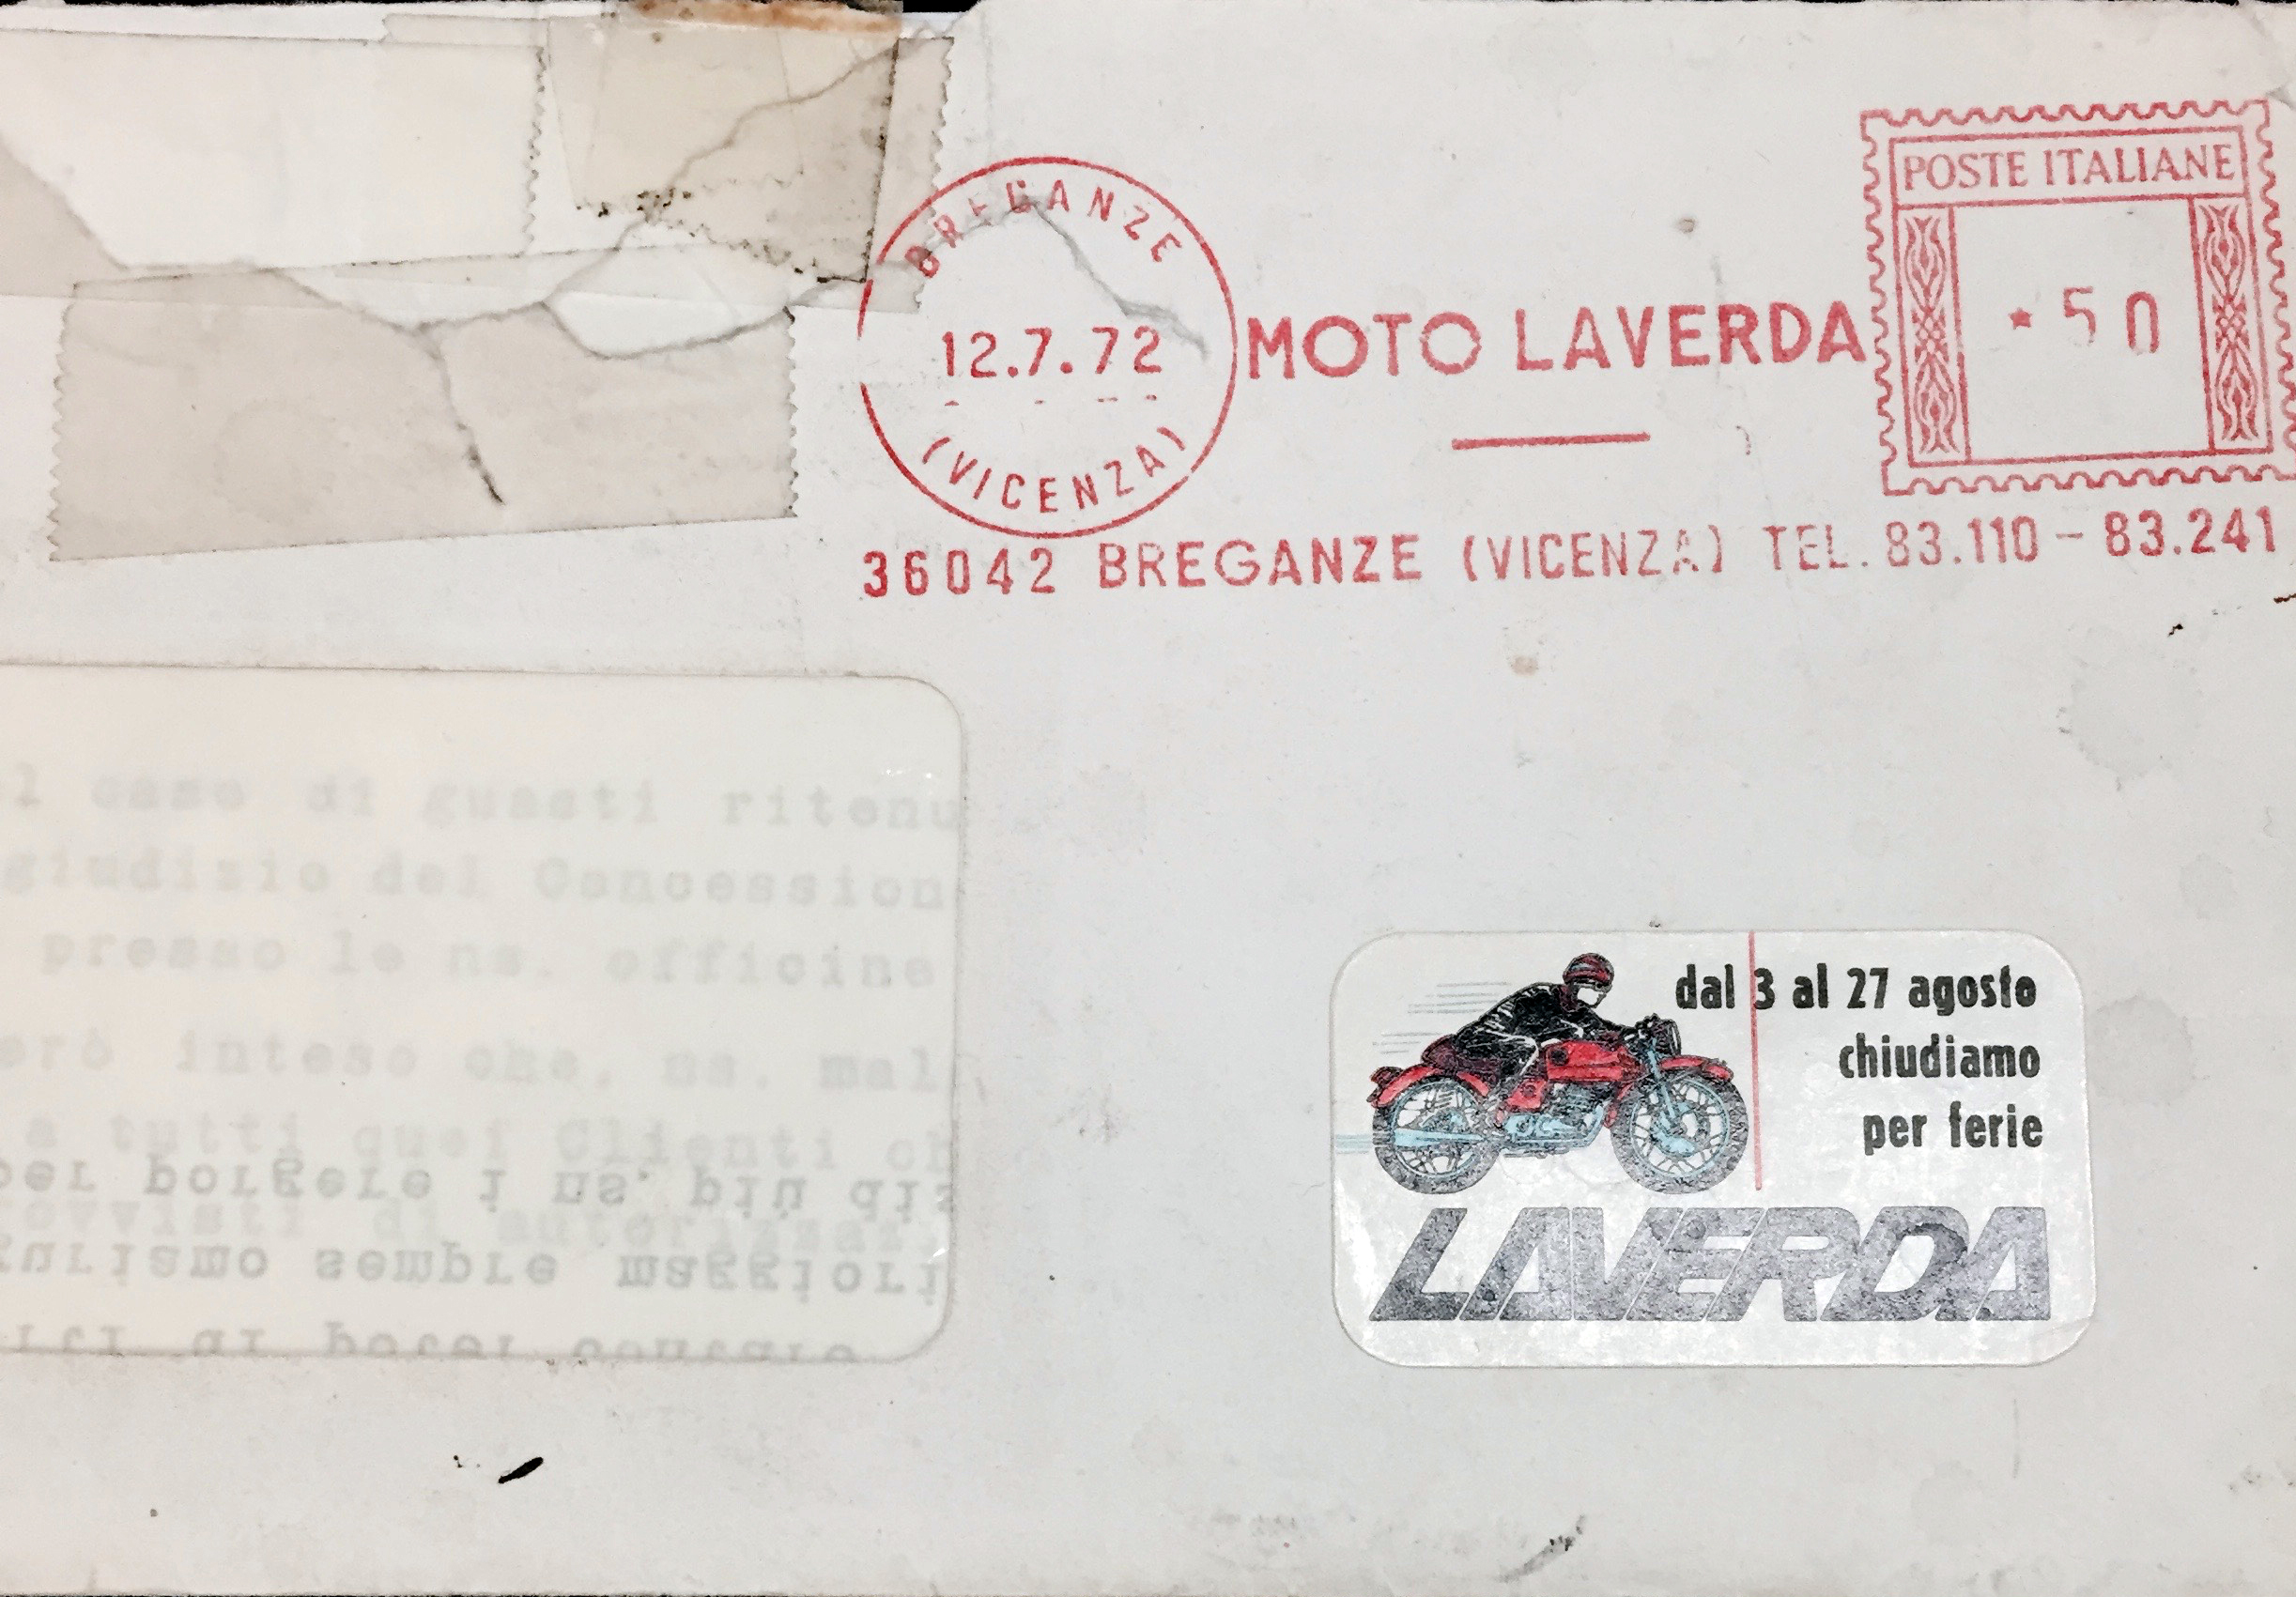 Laverda-envelope original stamp sfc